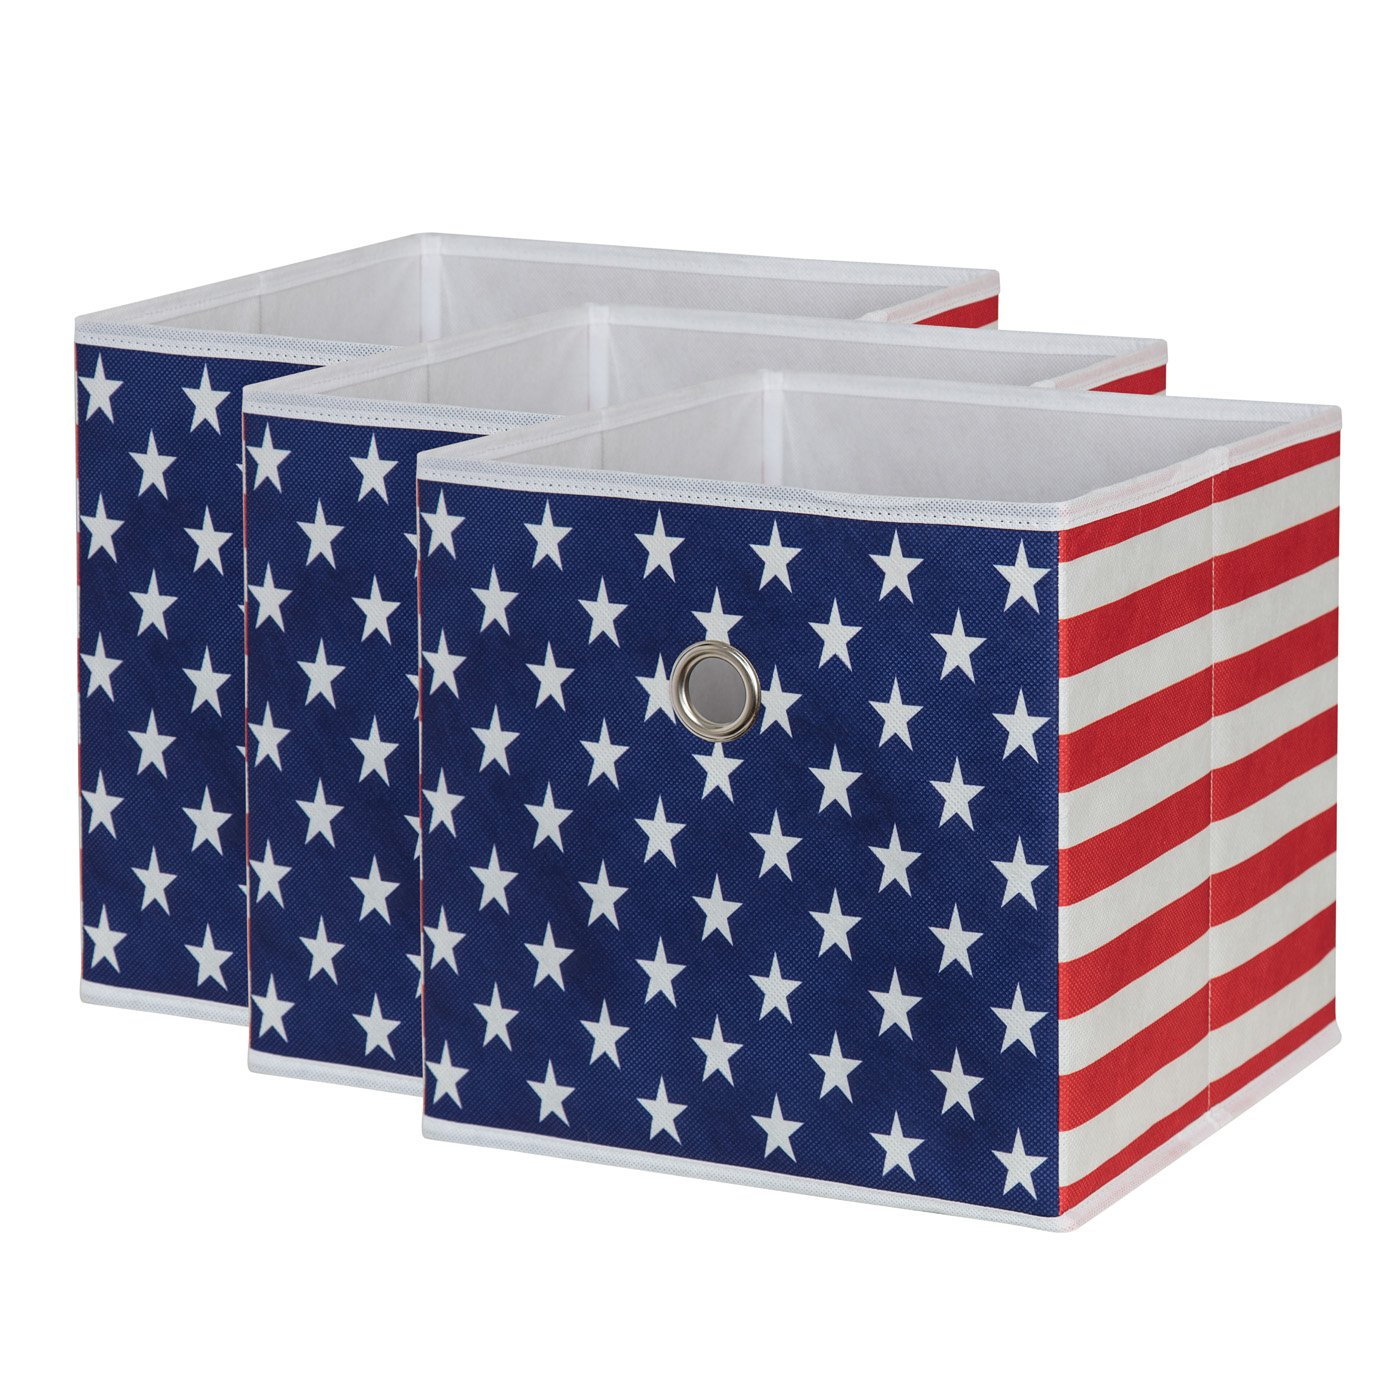 Amazon com sbs collapsible foldable fabric storage boxes cubes bins baskets american flag pattern 3 pack each storage bin measures 11 inches on all